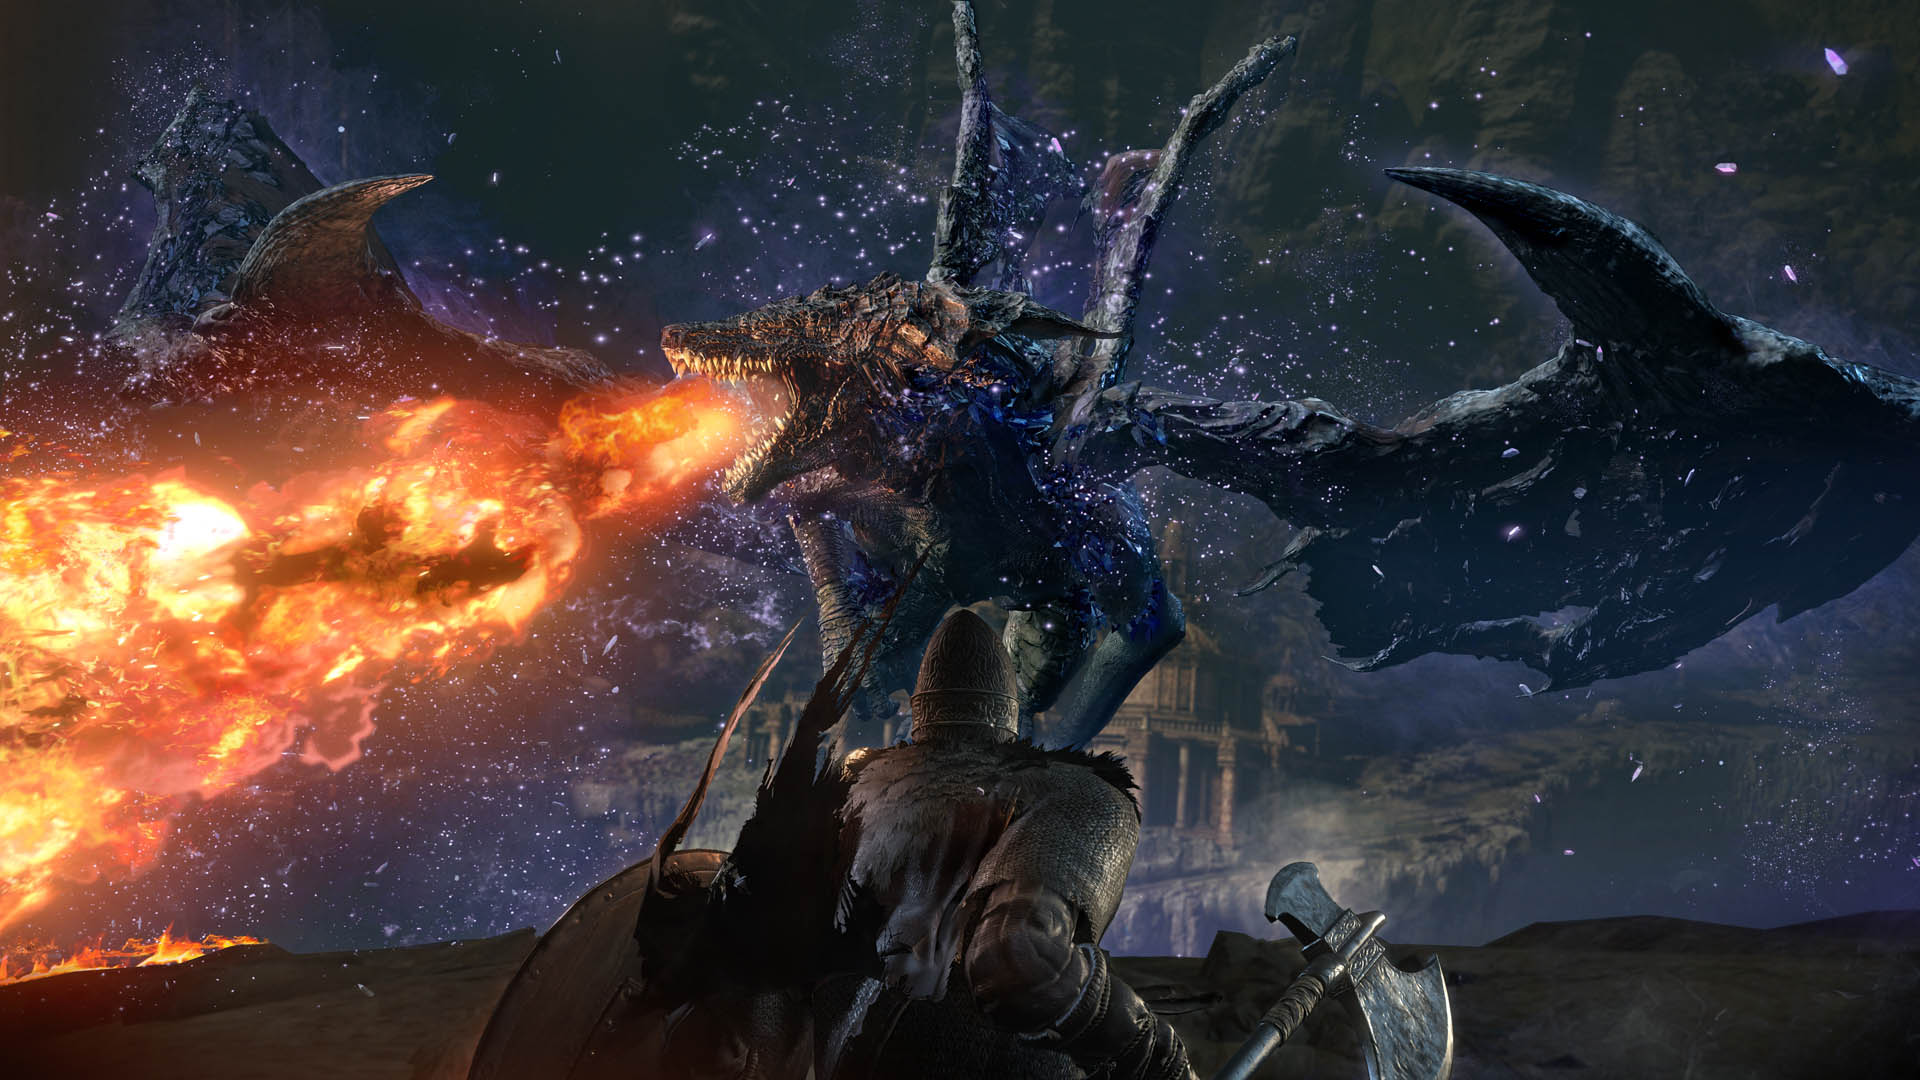 Dark Souls III The Ringed City DLC Screens And Artwork